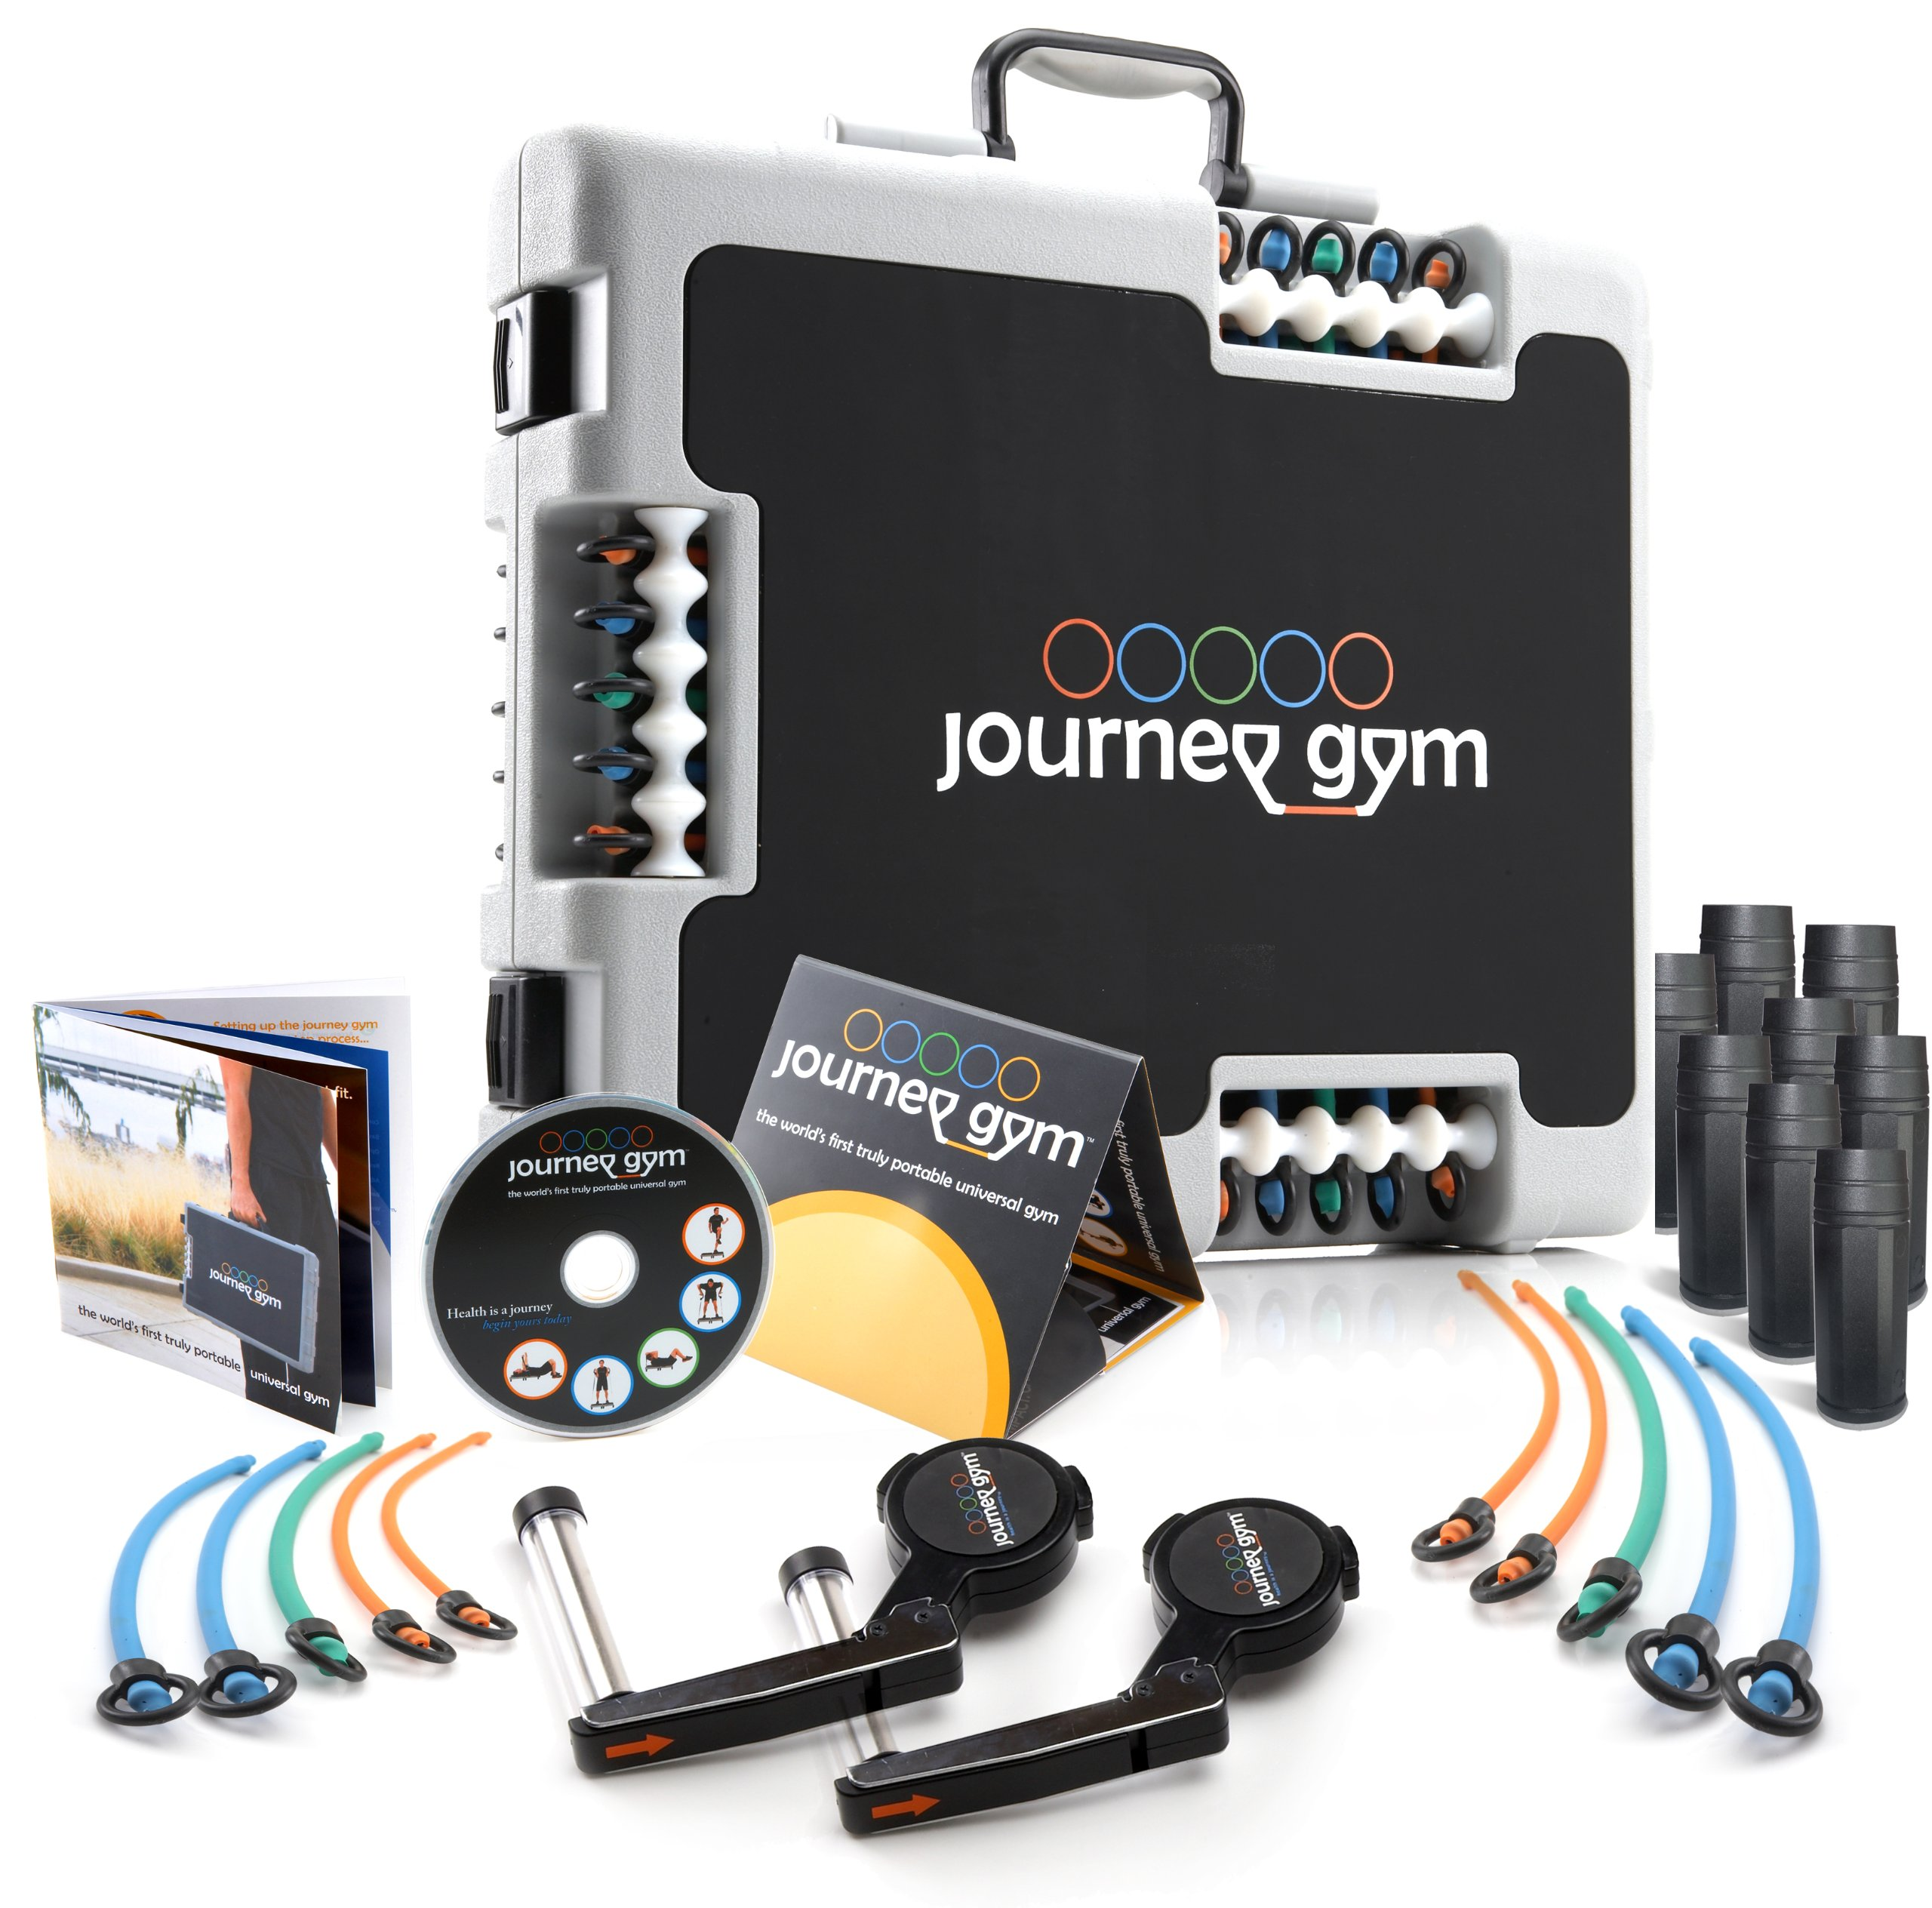 Journey Gym Portable Universal Gym for Cardio, Strength and Circuit Training by Journey Gym